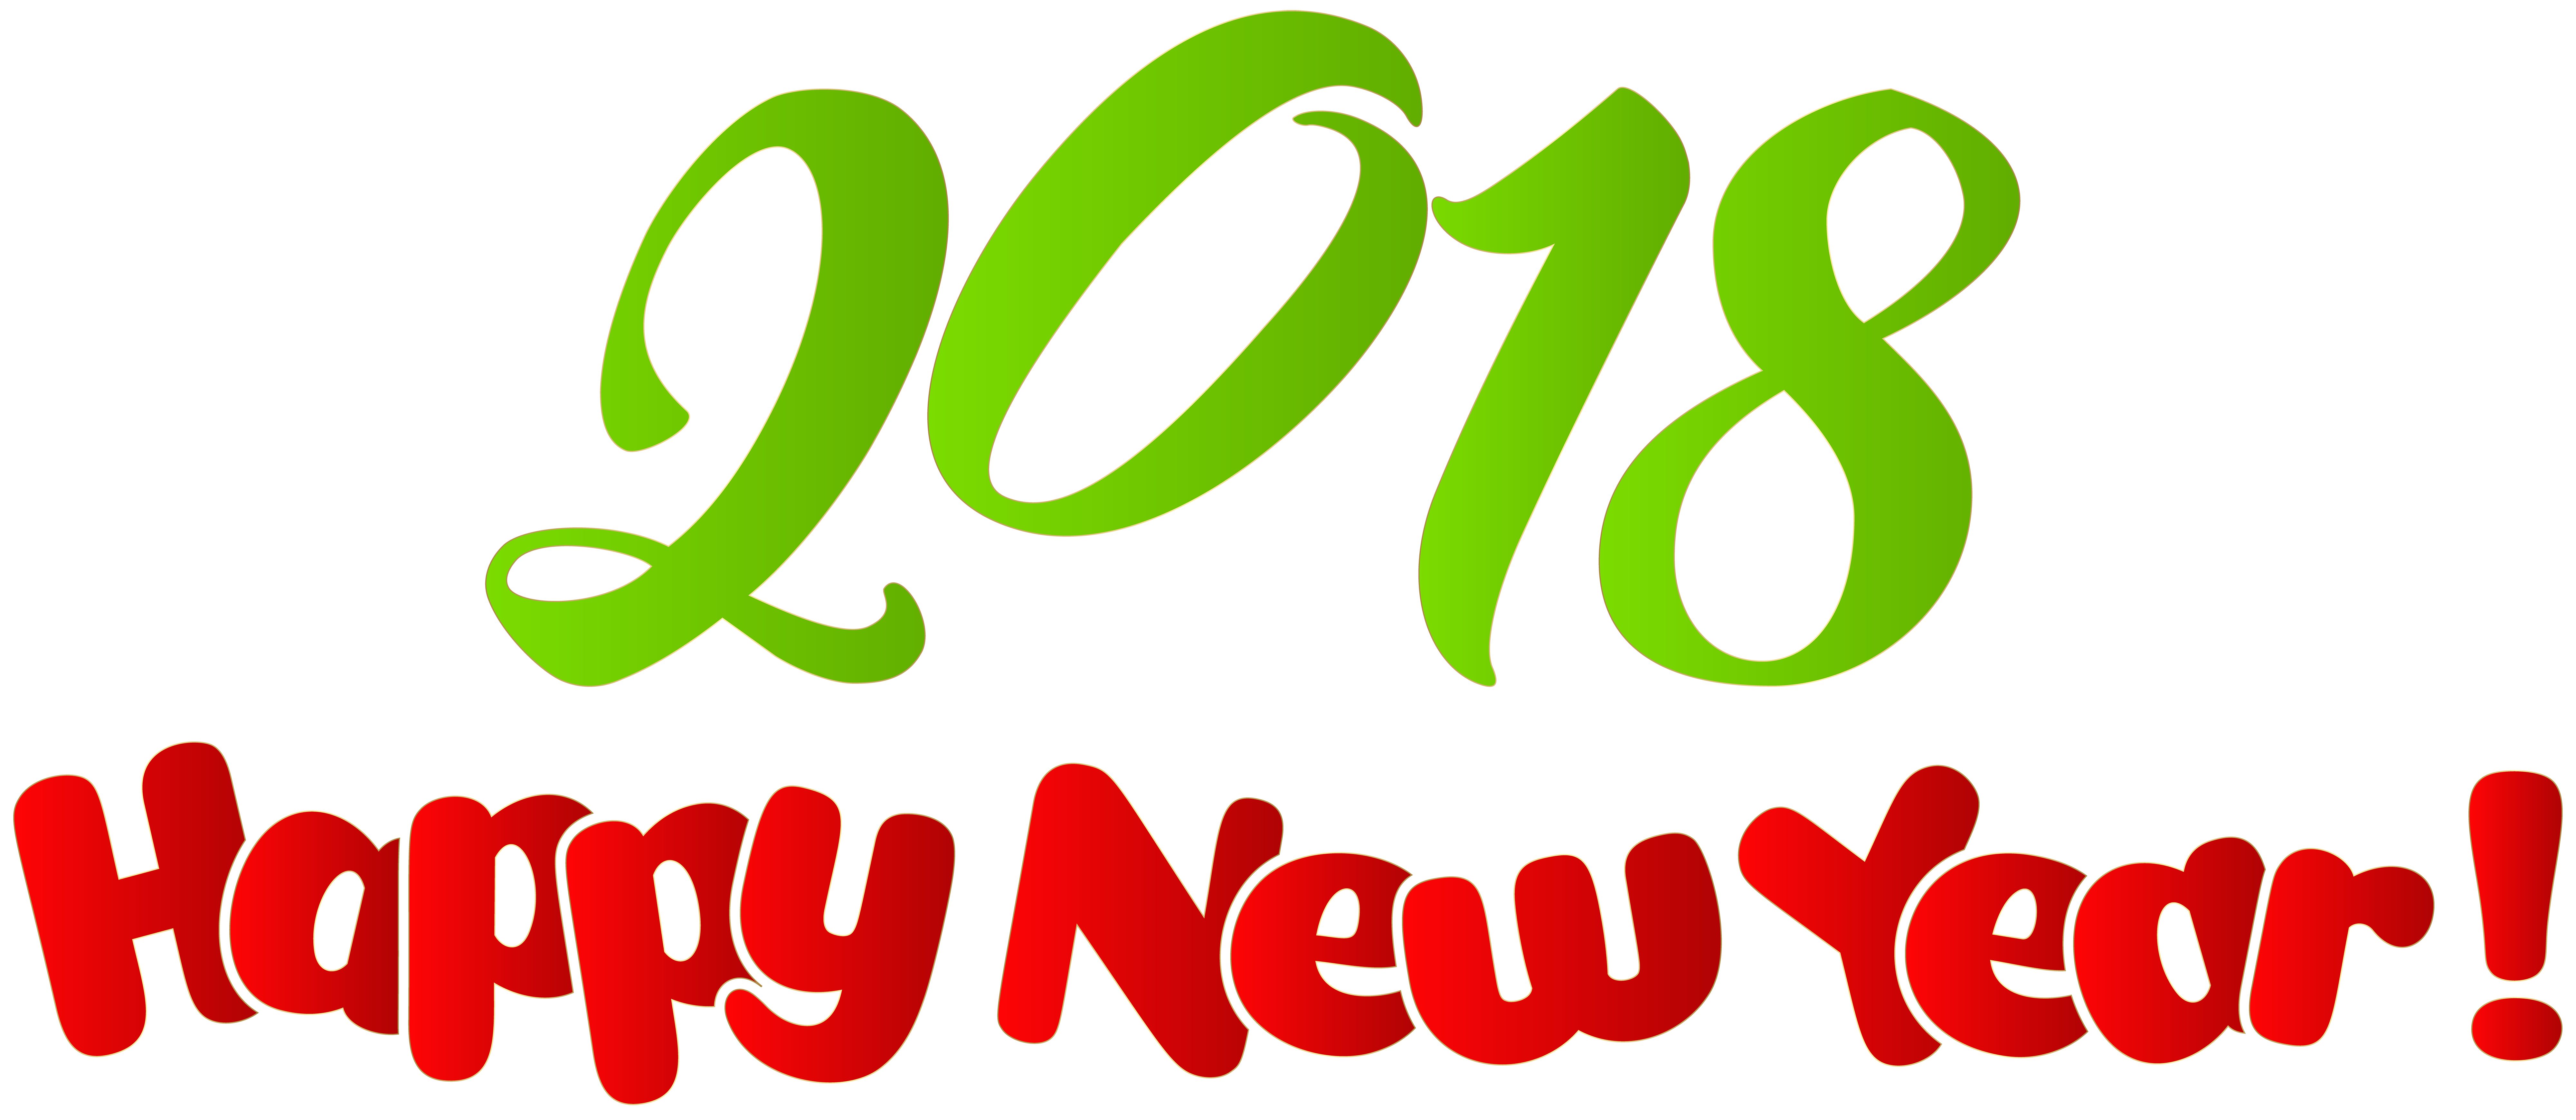 Free new years eve clipart 2018. Pin by joy lynn